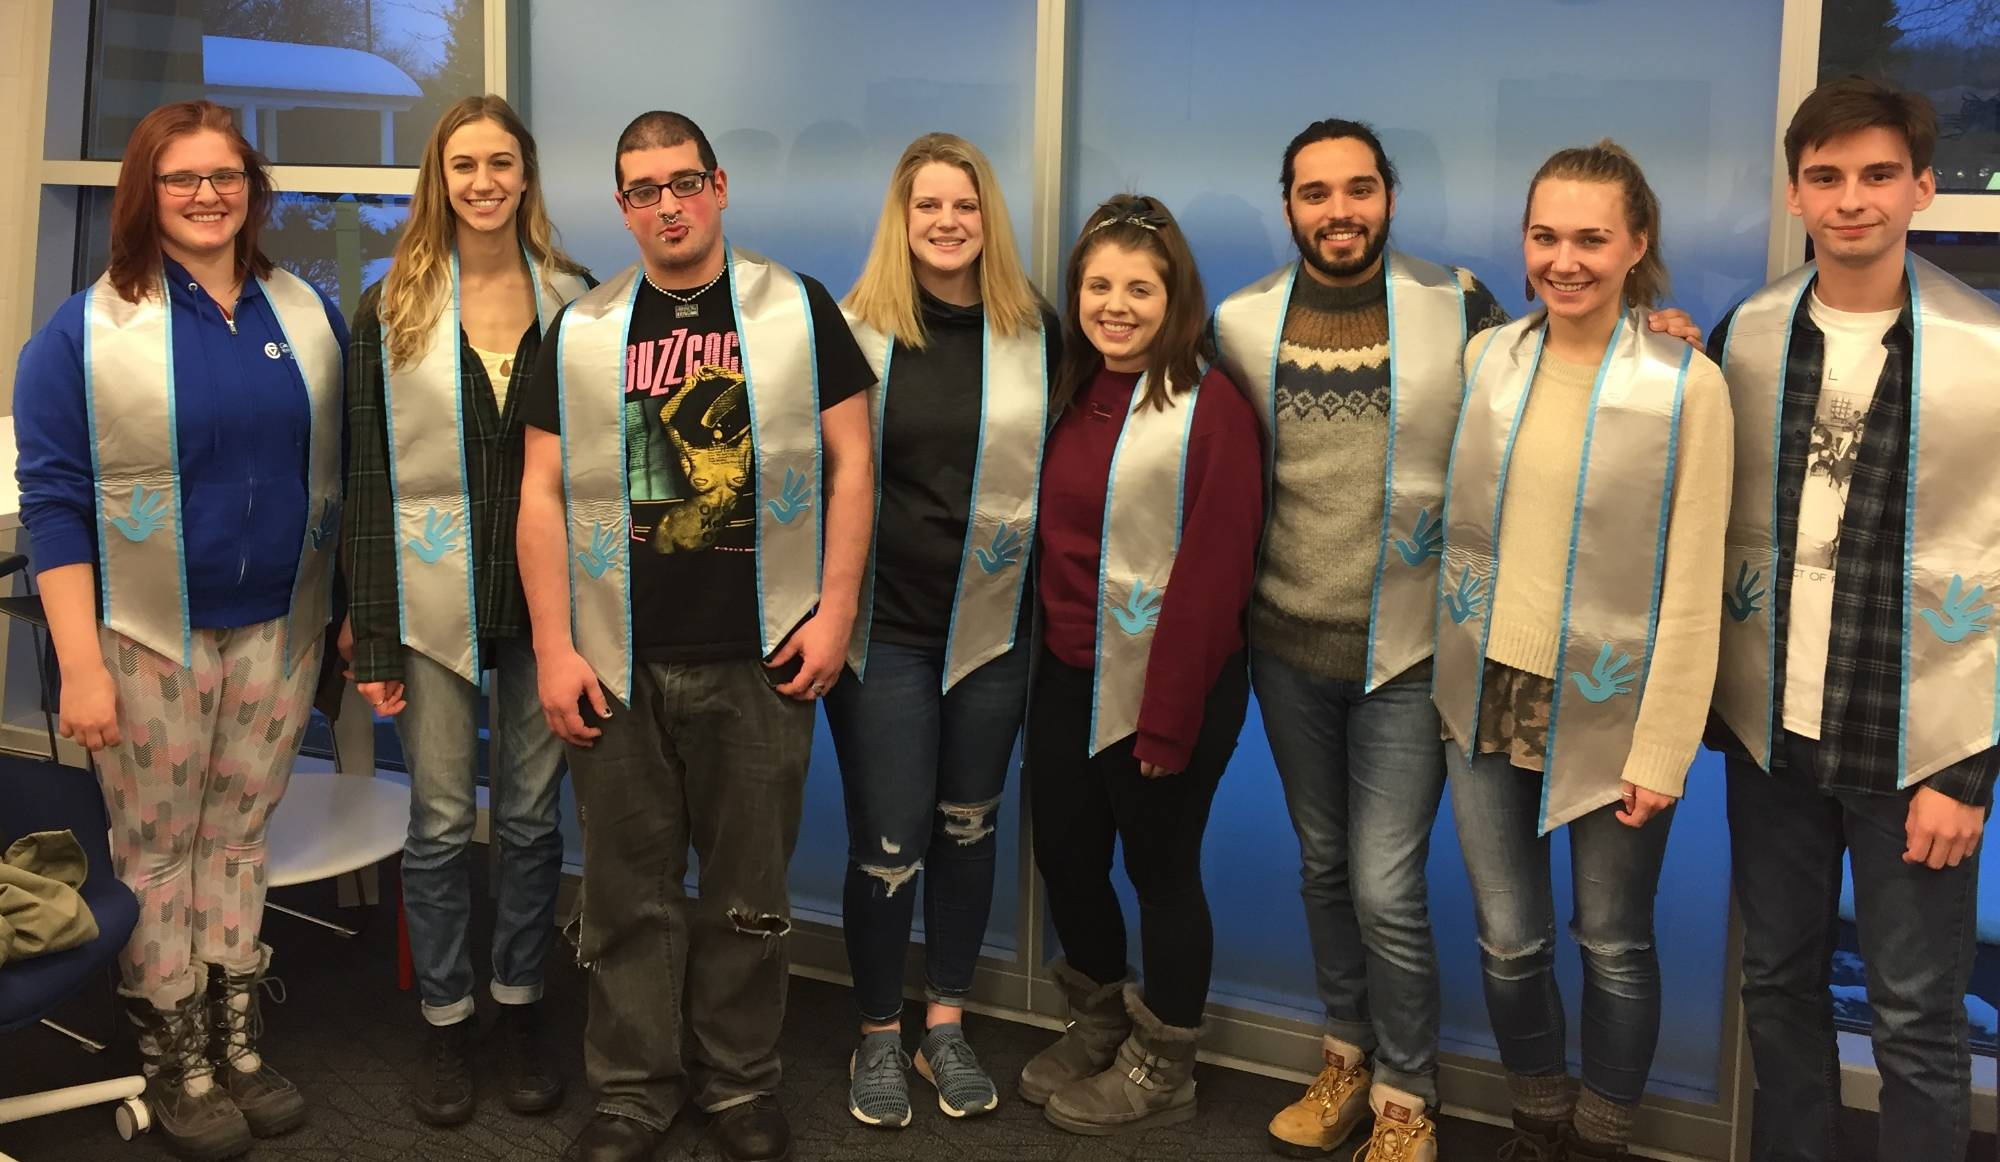 Photograph of 8 students wearing light blue and silver human rights graduation stoles.